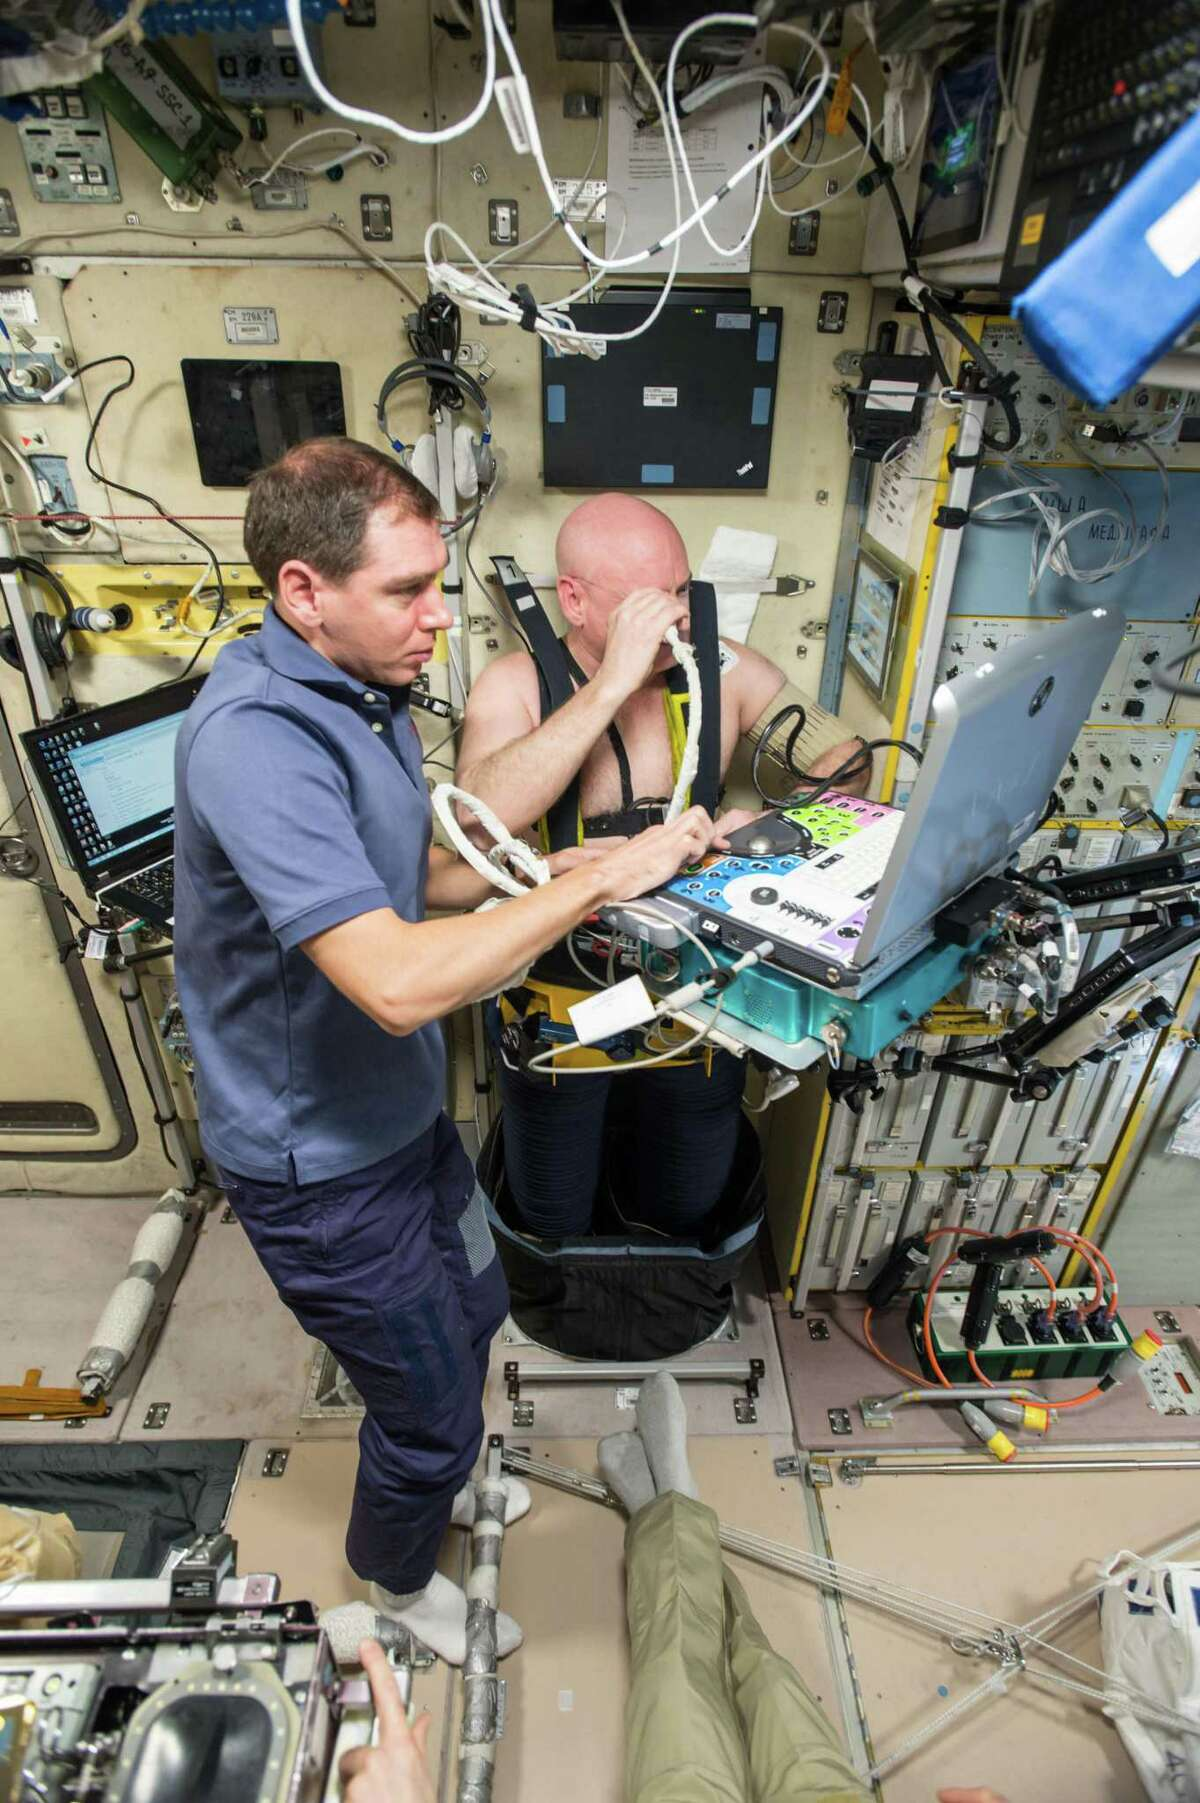 NASA astronaut Scott Kelly wearing a Chibis Lower Body Negative Pressure (LBNP) Suit, undergoes ultrasound measurements for the Fluid Shifts experiment.